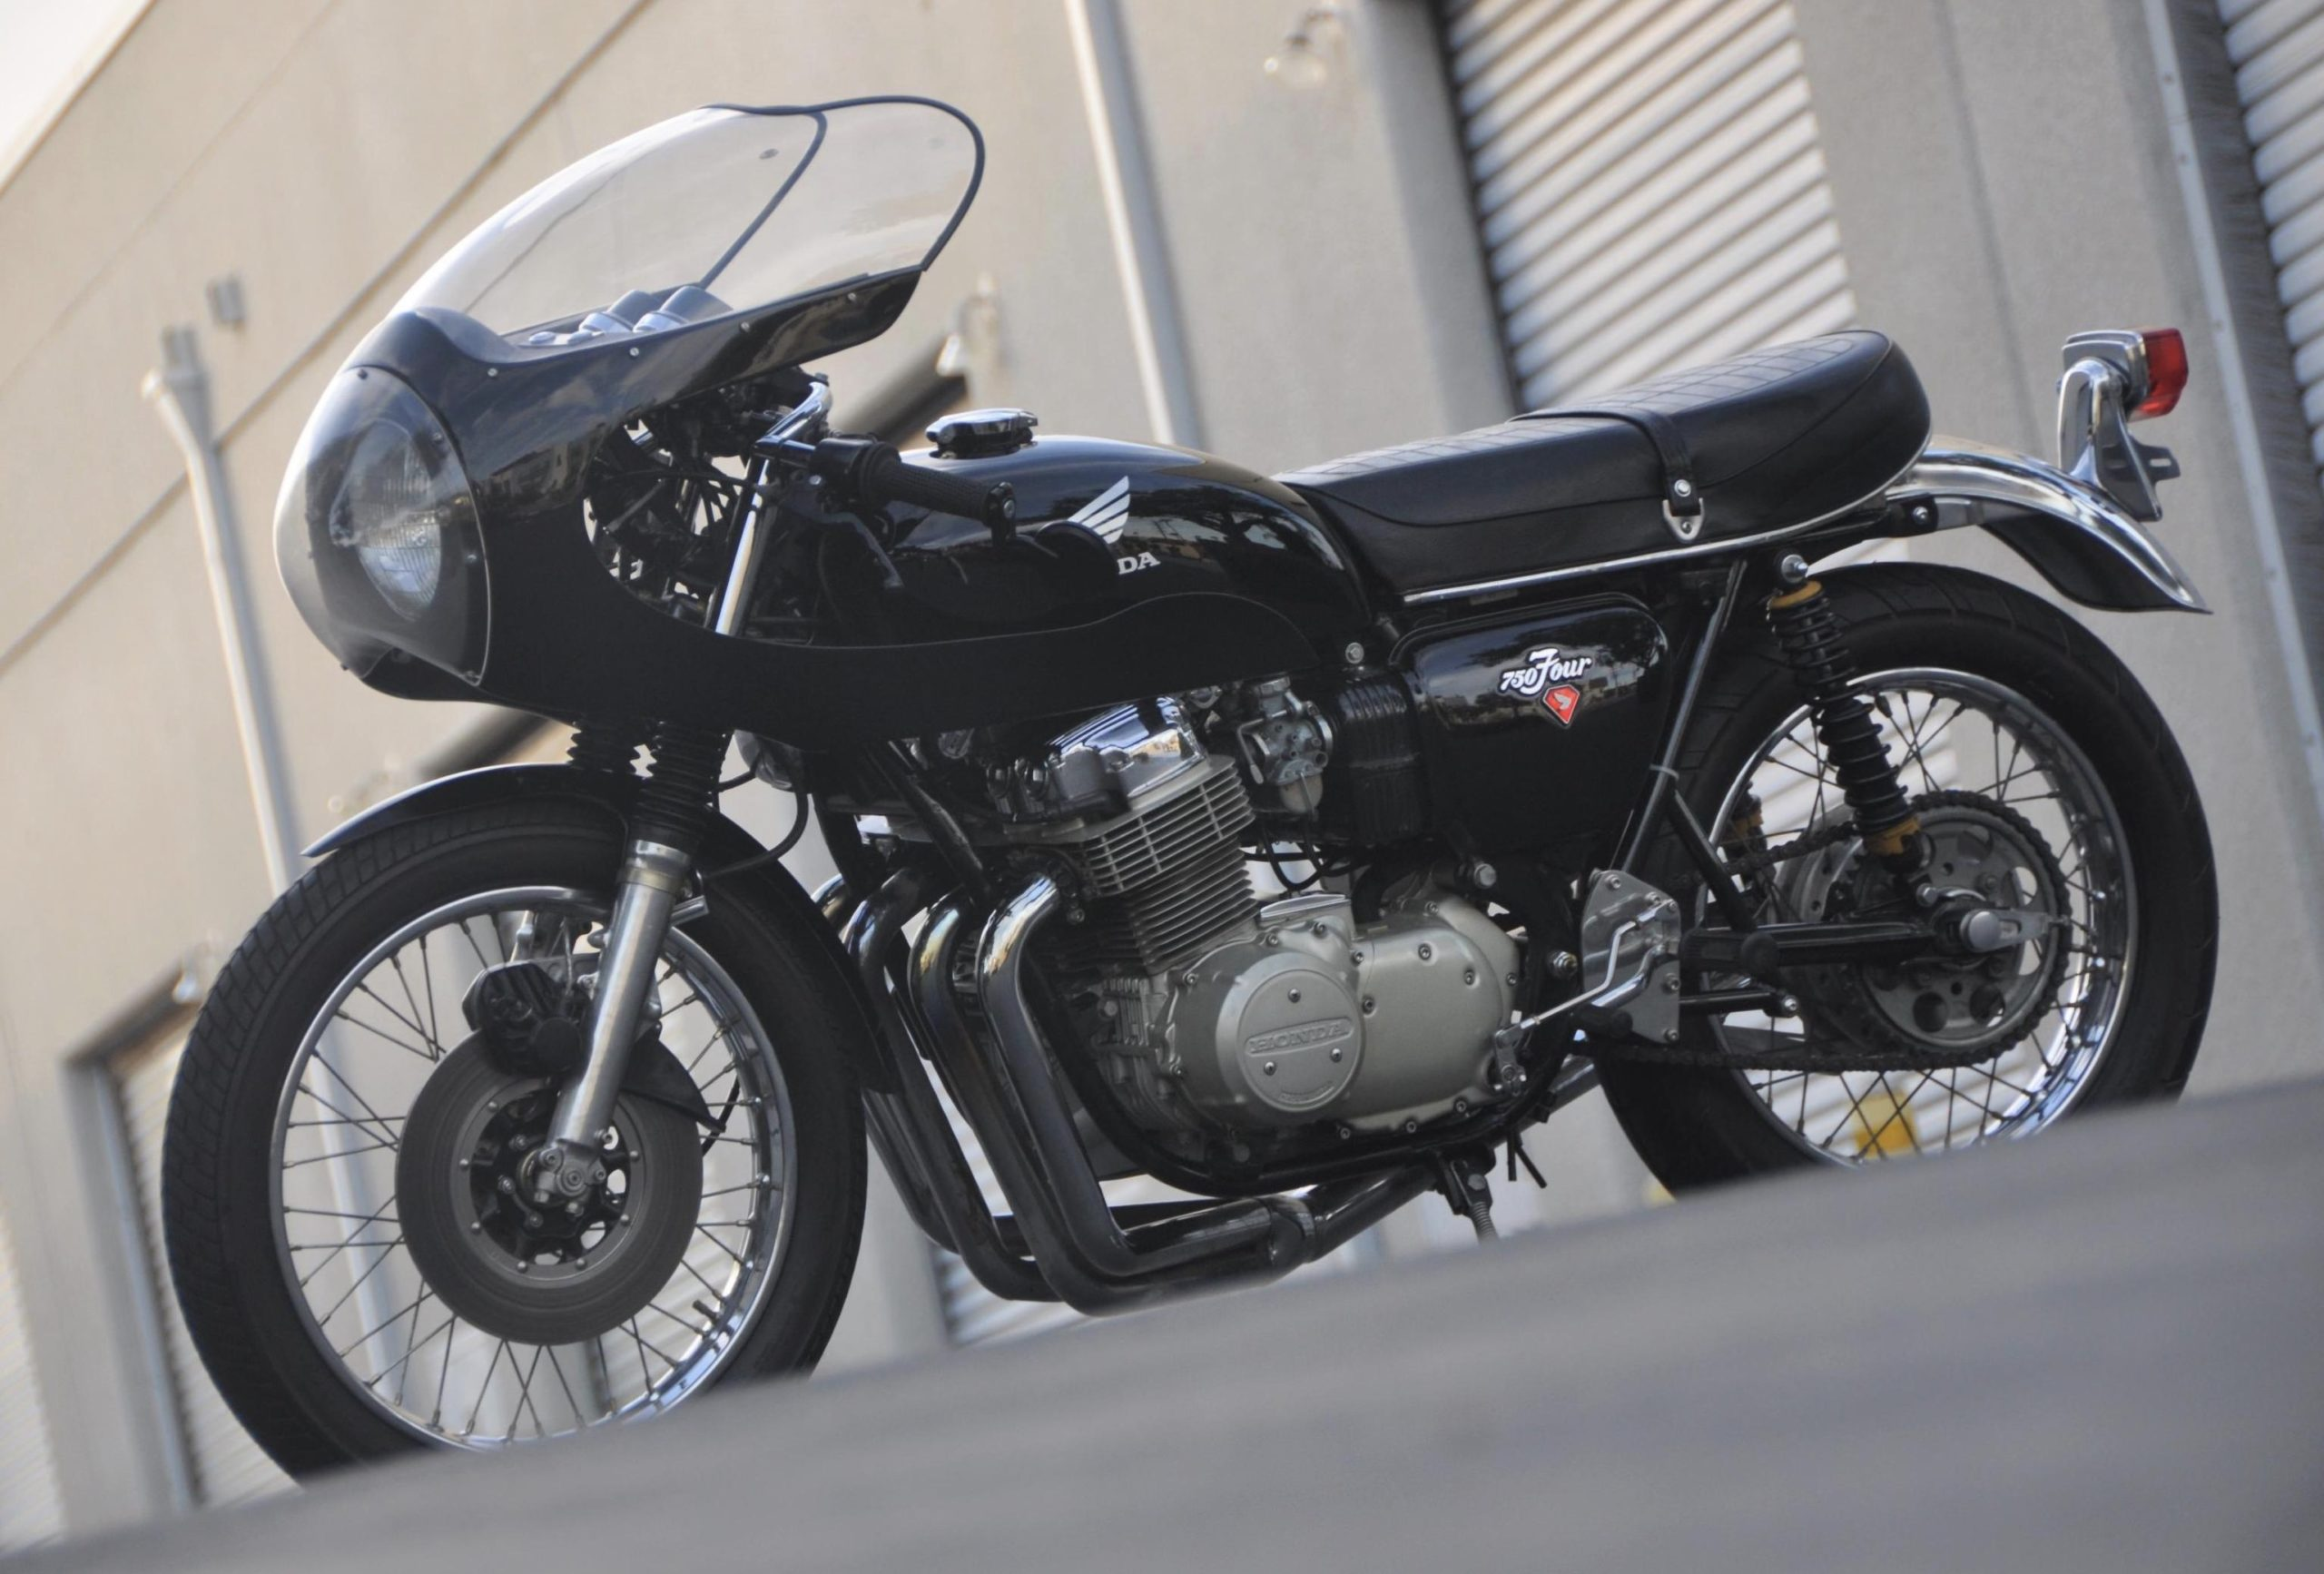 Is This The Perfect Honda Cb750 Cafe Racer We Think It Might Be